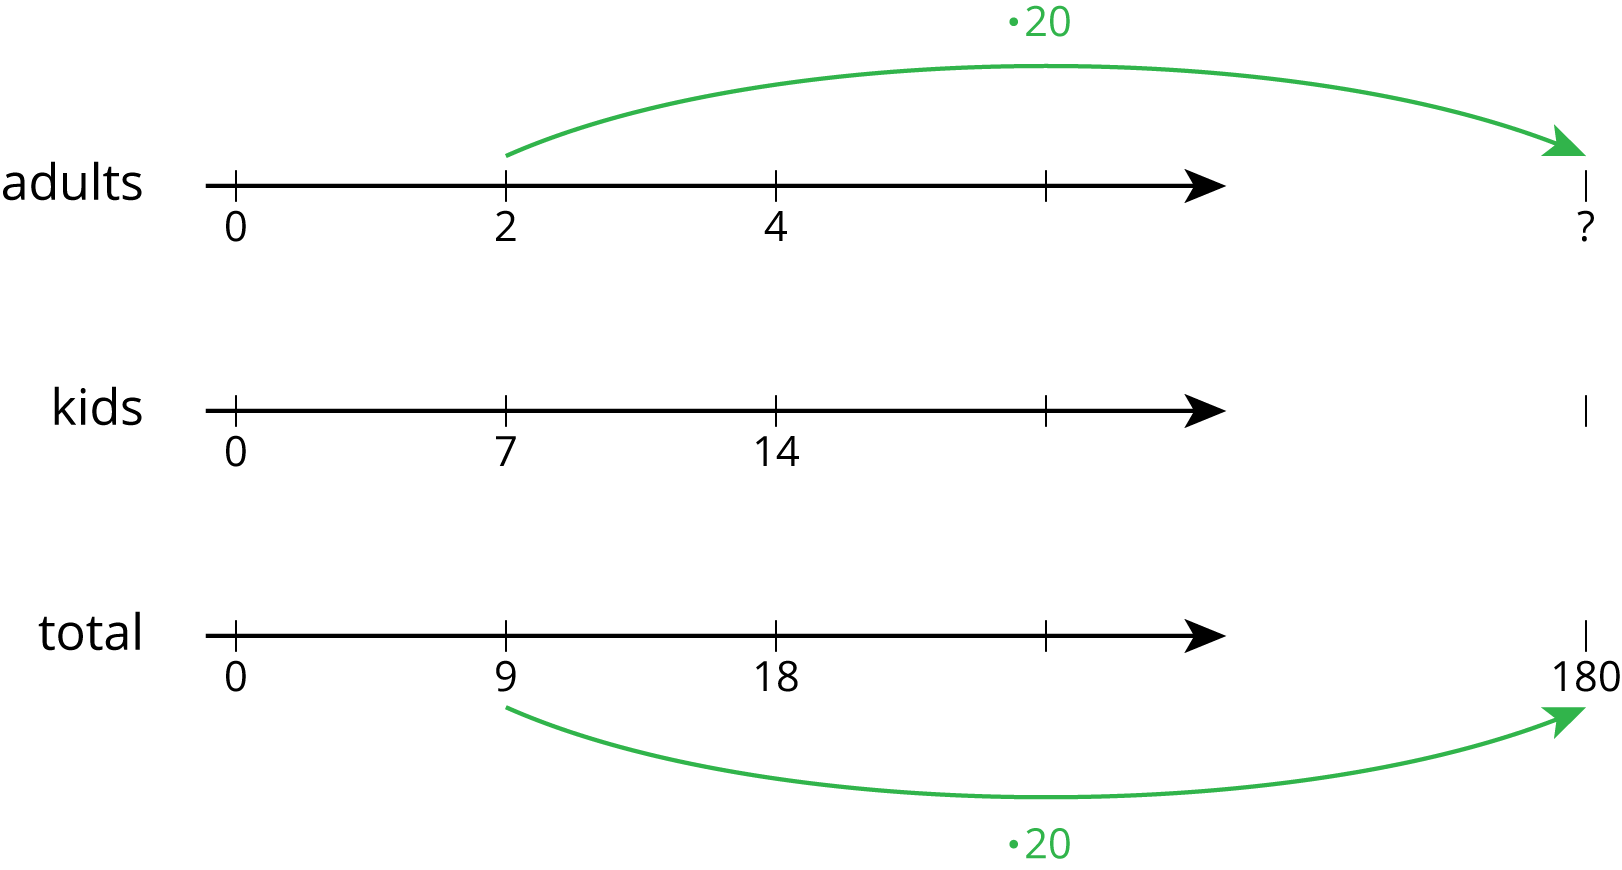 """A triple number line with 4 evenly spaced tick marks. For """"adults"""" the numbers 0, 2, 4, are indicated and the last tick mark is blank. For """"kids"""" the numbers 0, 7, 14 are indicated and the last tick mark is blank. For """"total"""" the numbers 0, 9, 18 are indicated and the last tick mark is blank. An arrow pointing from the 2nd tick mark of """"adults"""" to a blank tick mark beyond the number line is labeled """"times 20."""" A second arrow pointing from the 2nd tick mark of """"total"""" to a tick mark beyond the number line marked 180 is labeled """"times 20."""""""